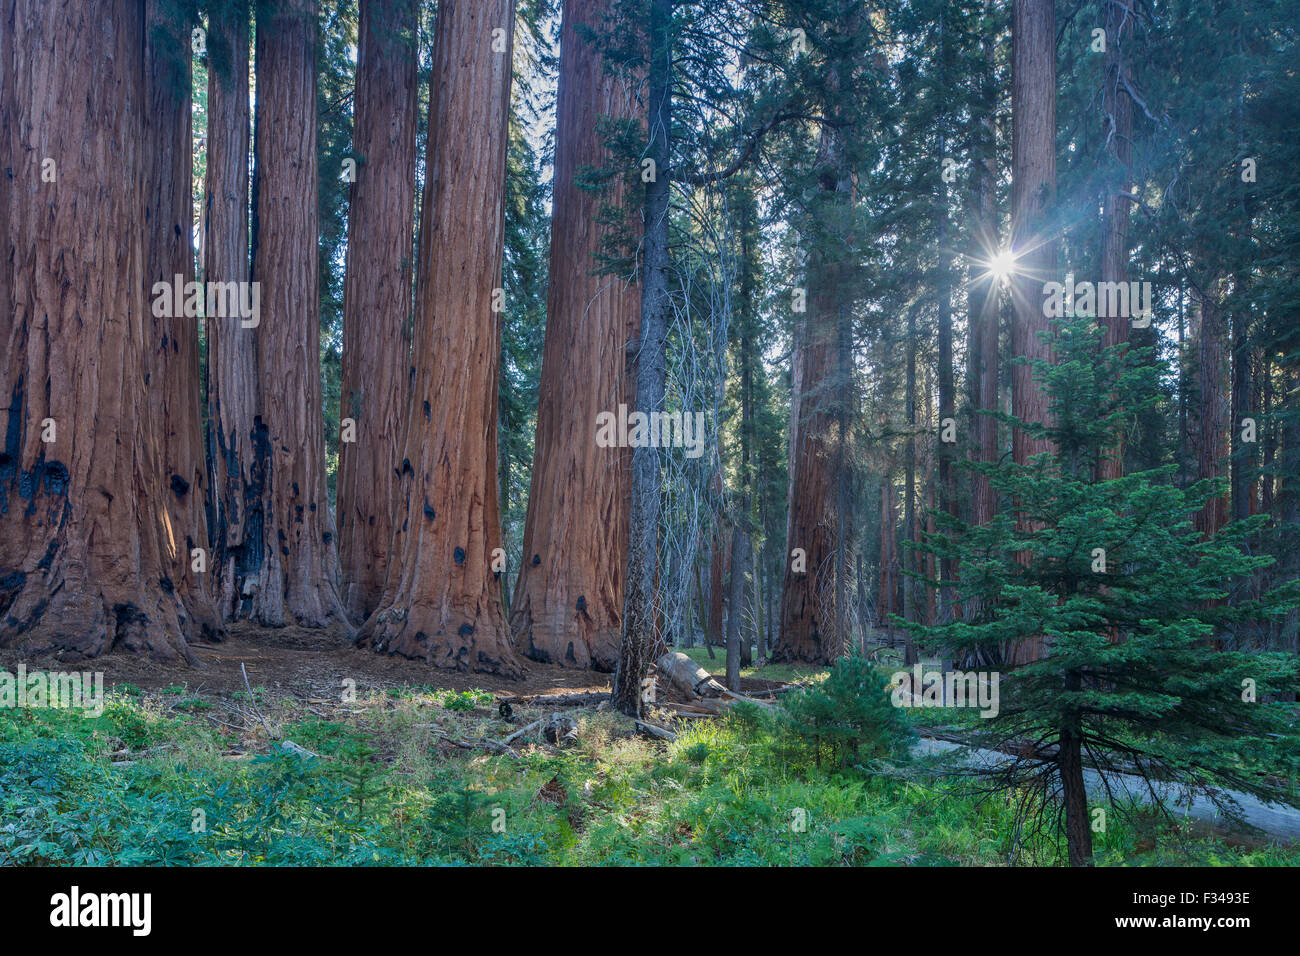 the Senate Group of giant sequoia trees on the Congress Trail in Sequoia National Park, California, USA - Stock Image